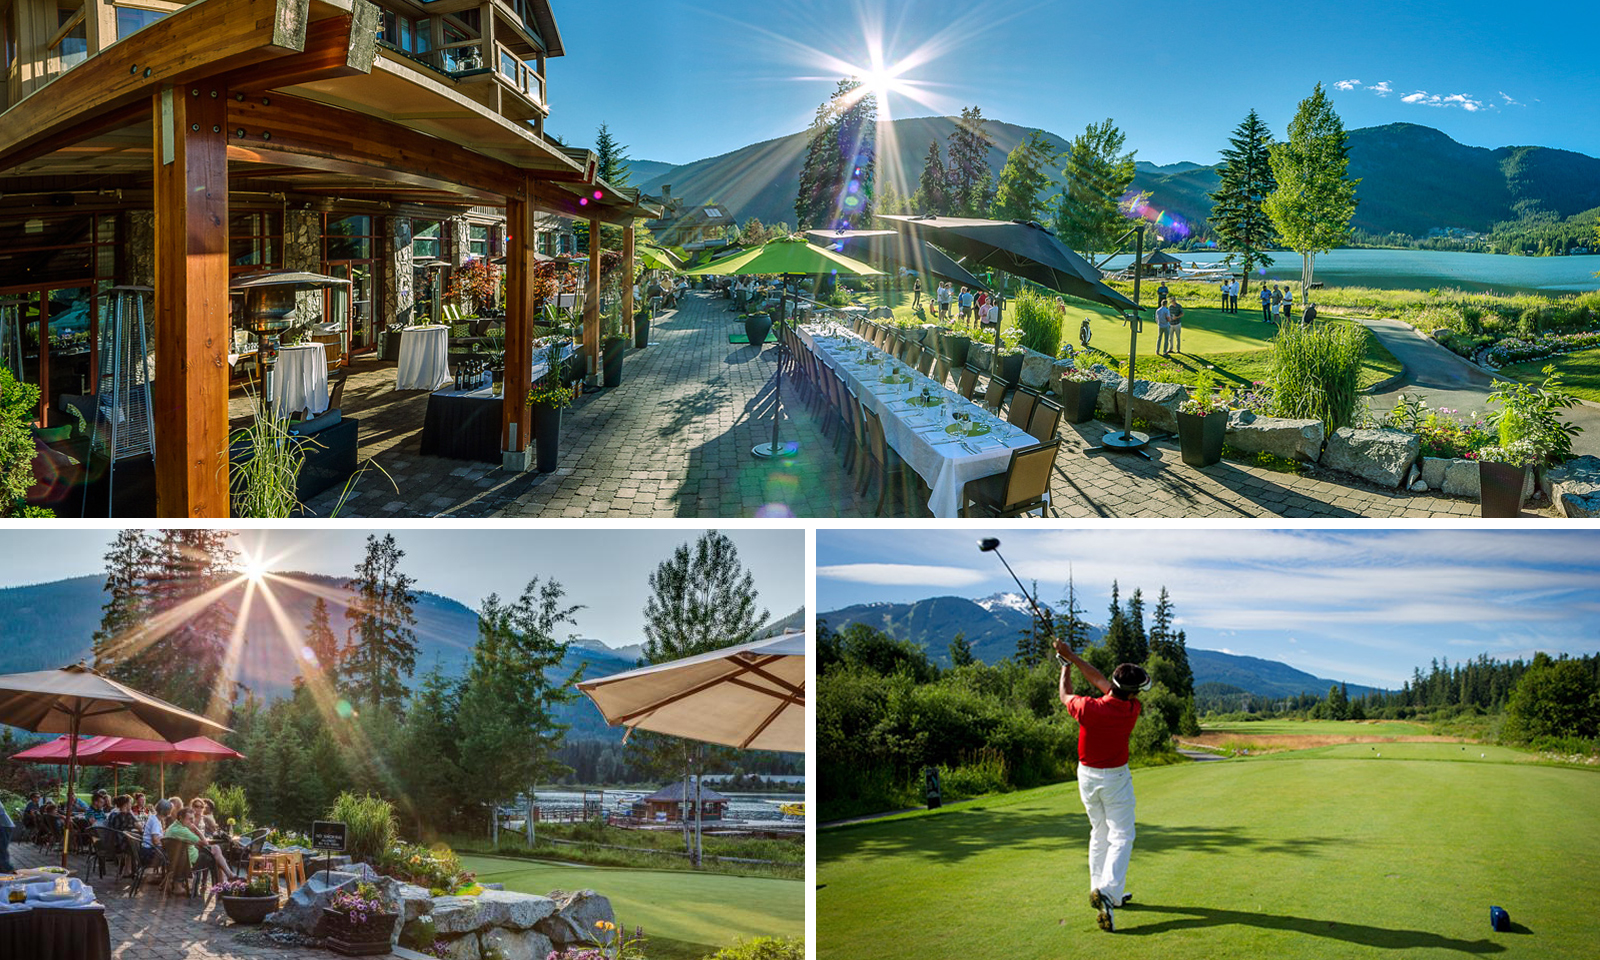 Travel Hitting the High Life at Whistler Nicklaus North Golf Club